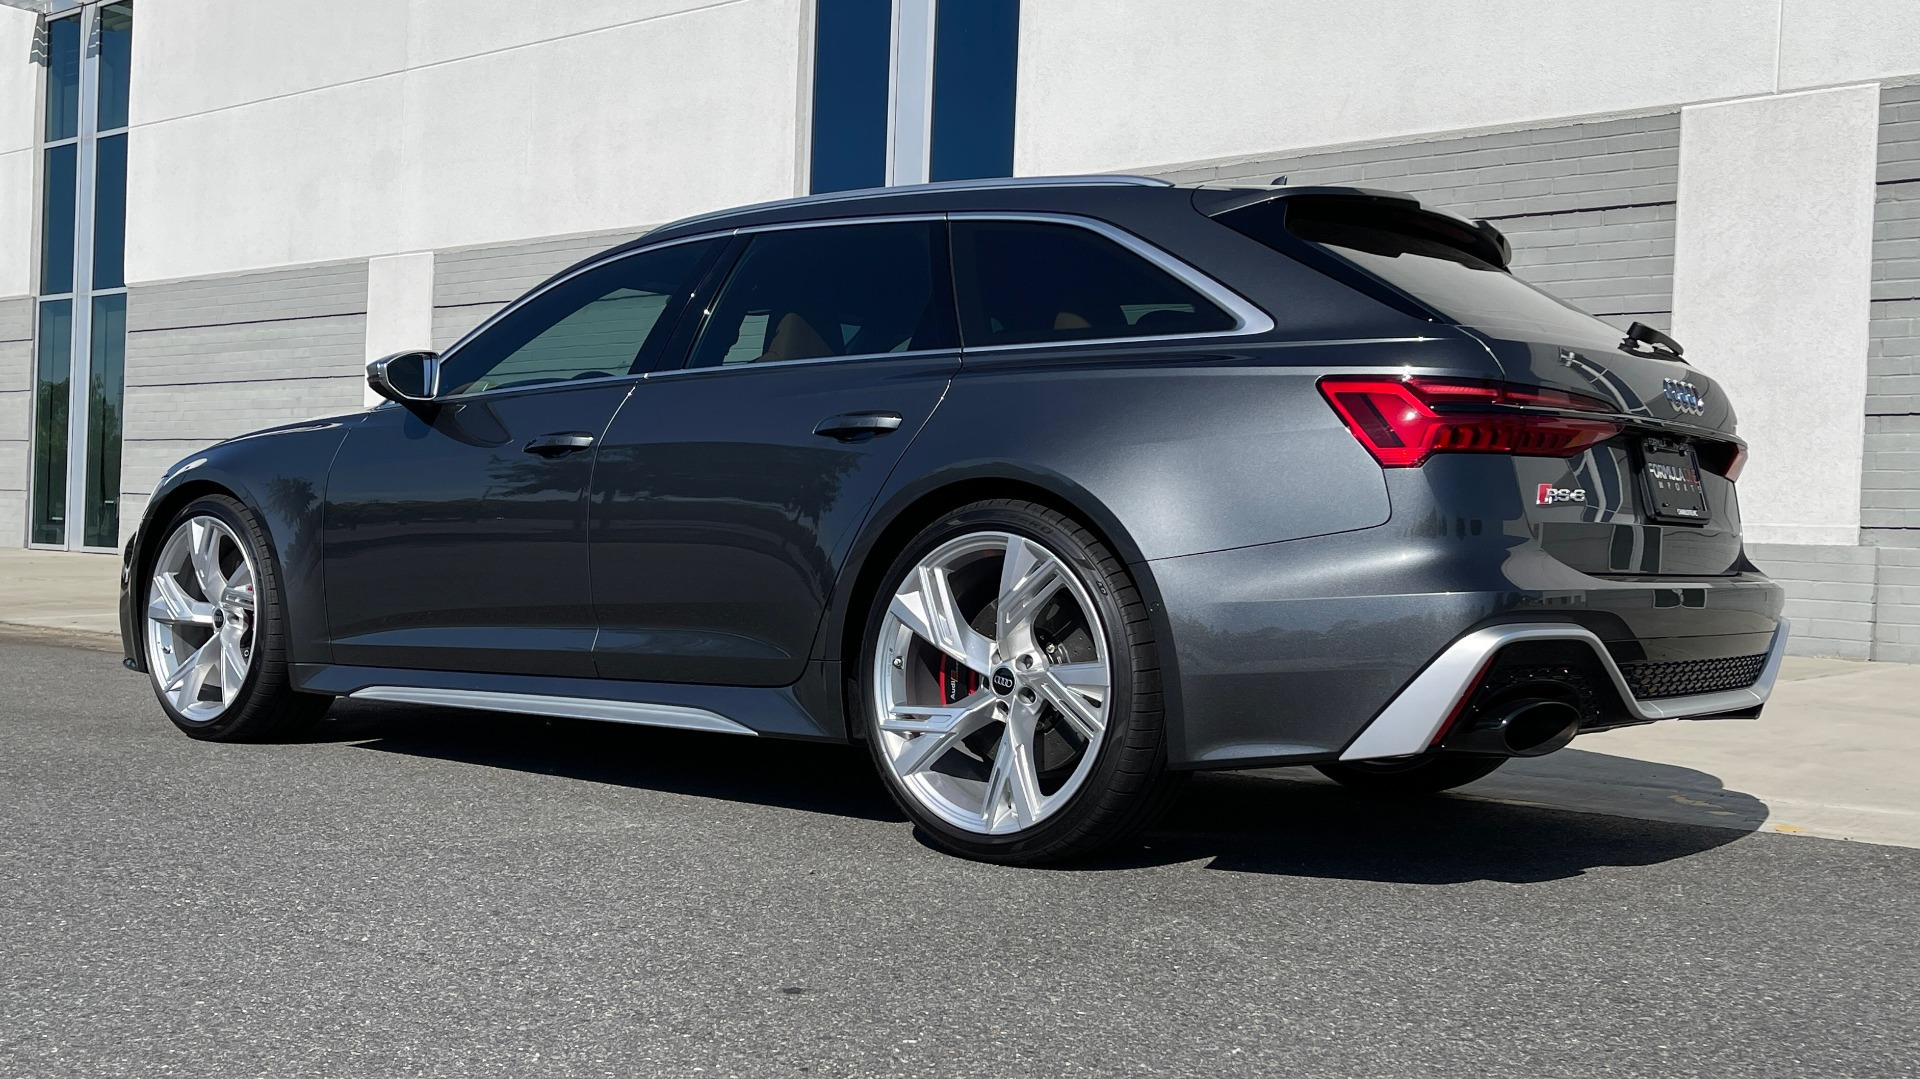 Used 2021 Audi RS 6 AVANT WAGON / EXEC PKG / CARBON OPTIC / B&O SND / DRVR ASST / SPRT EXH for sale Sold at Formula Imports in Charlotte NC 28227 5